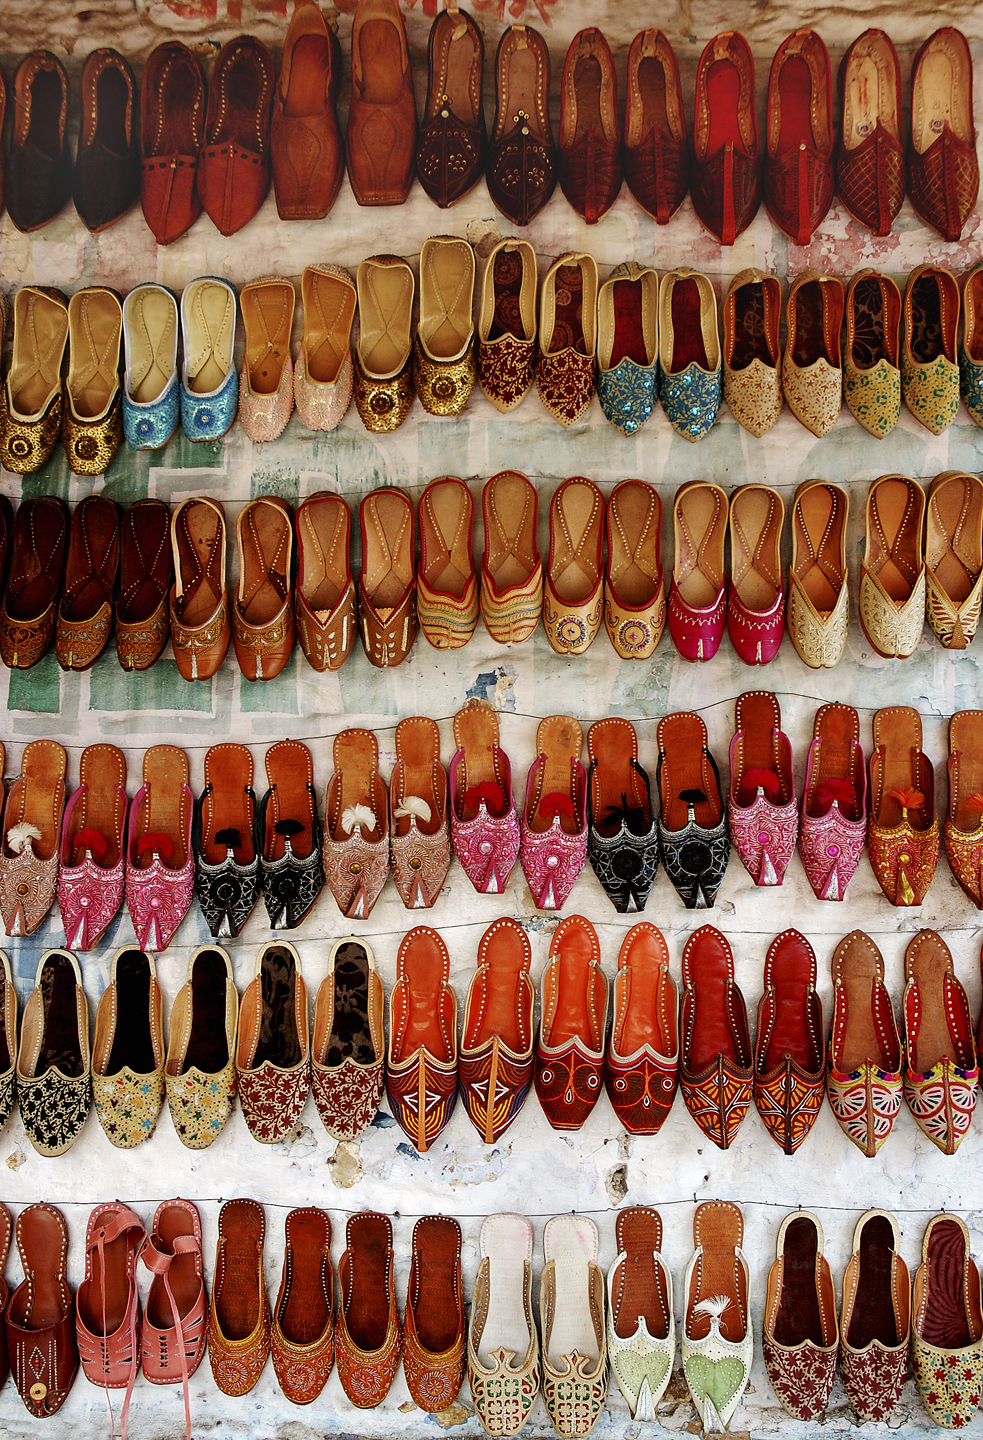 Travel Image ~ Rajasthani Shoes - Jodhpur, IndiaThe town center of Jodhpur, in the heart of Rajasthan, teems with the hustle of markets around the world.  Spices are measured for sale in one corner with shoes in the next corner.  The traditional designs on these shoes are often hand stitched in local homes.  The young man selling these shoes swore they were stitched by his own mother.  Here, you can walk away wearing a little piece of the India of the maharajas.  These shoes remind me of all the different shoes we wear & the diverse paths we walk each lifetime.